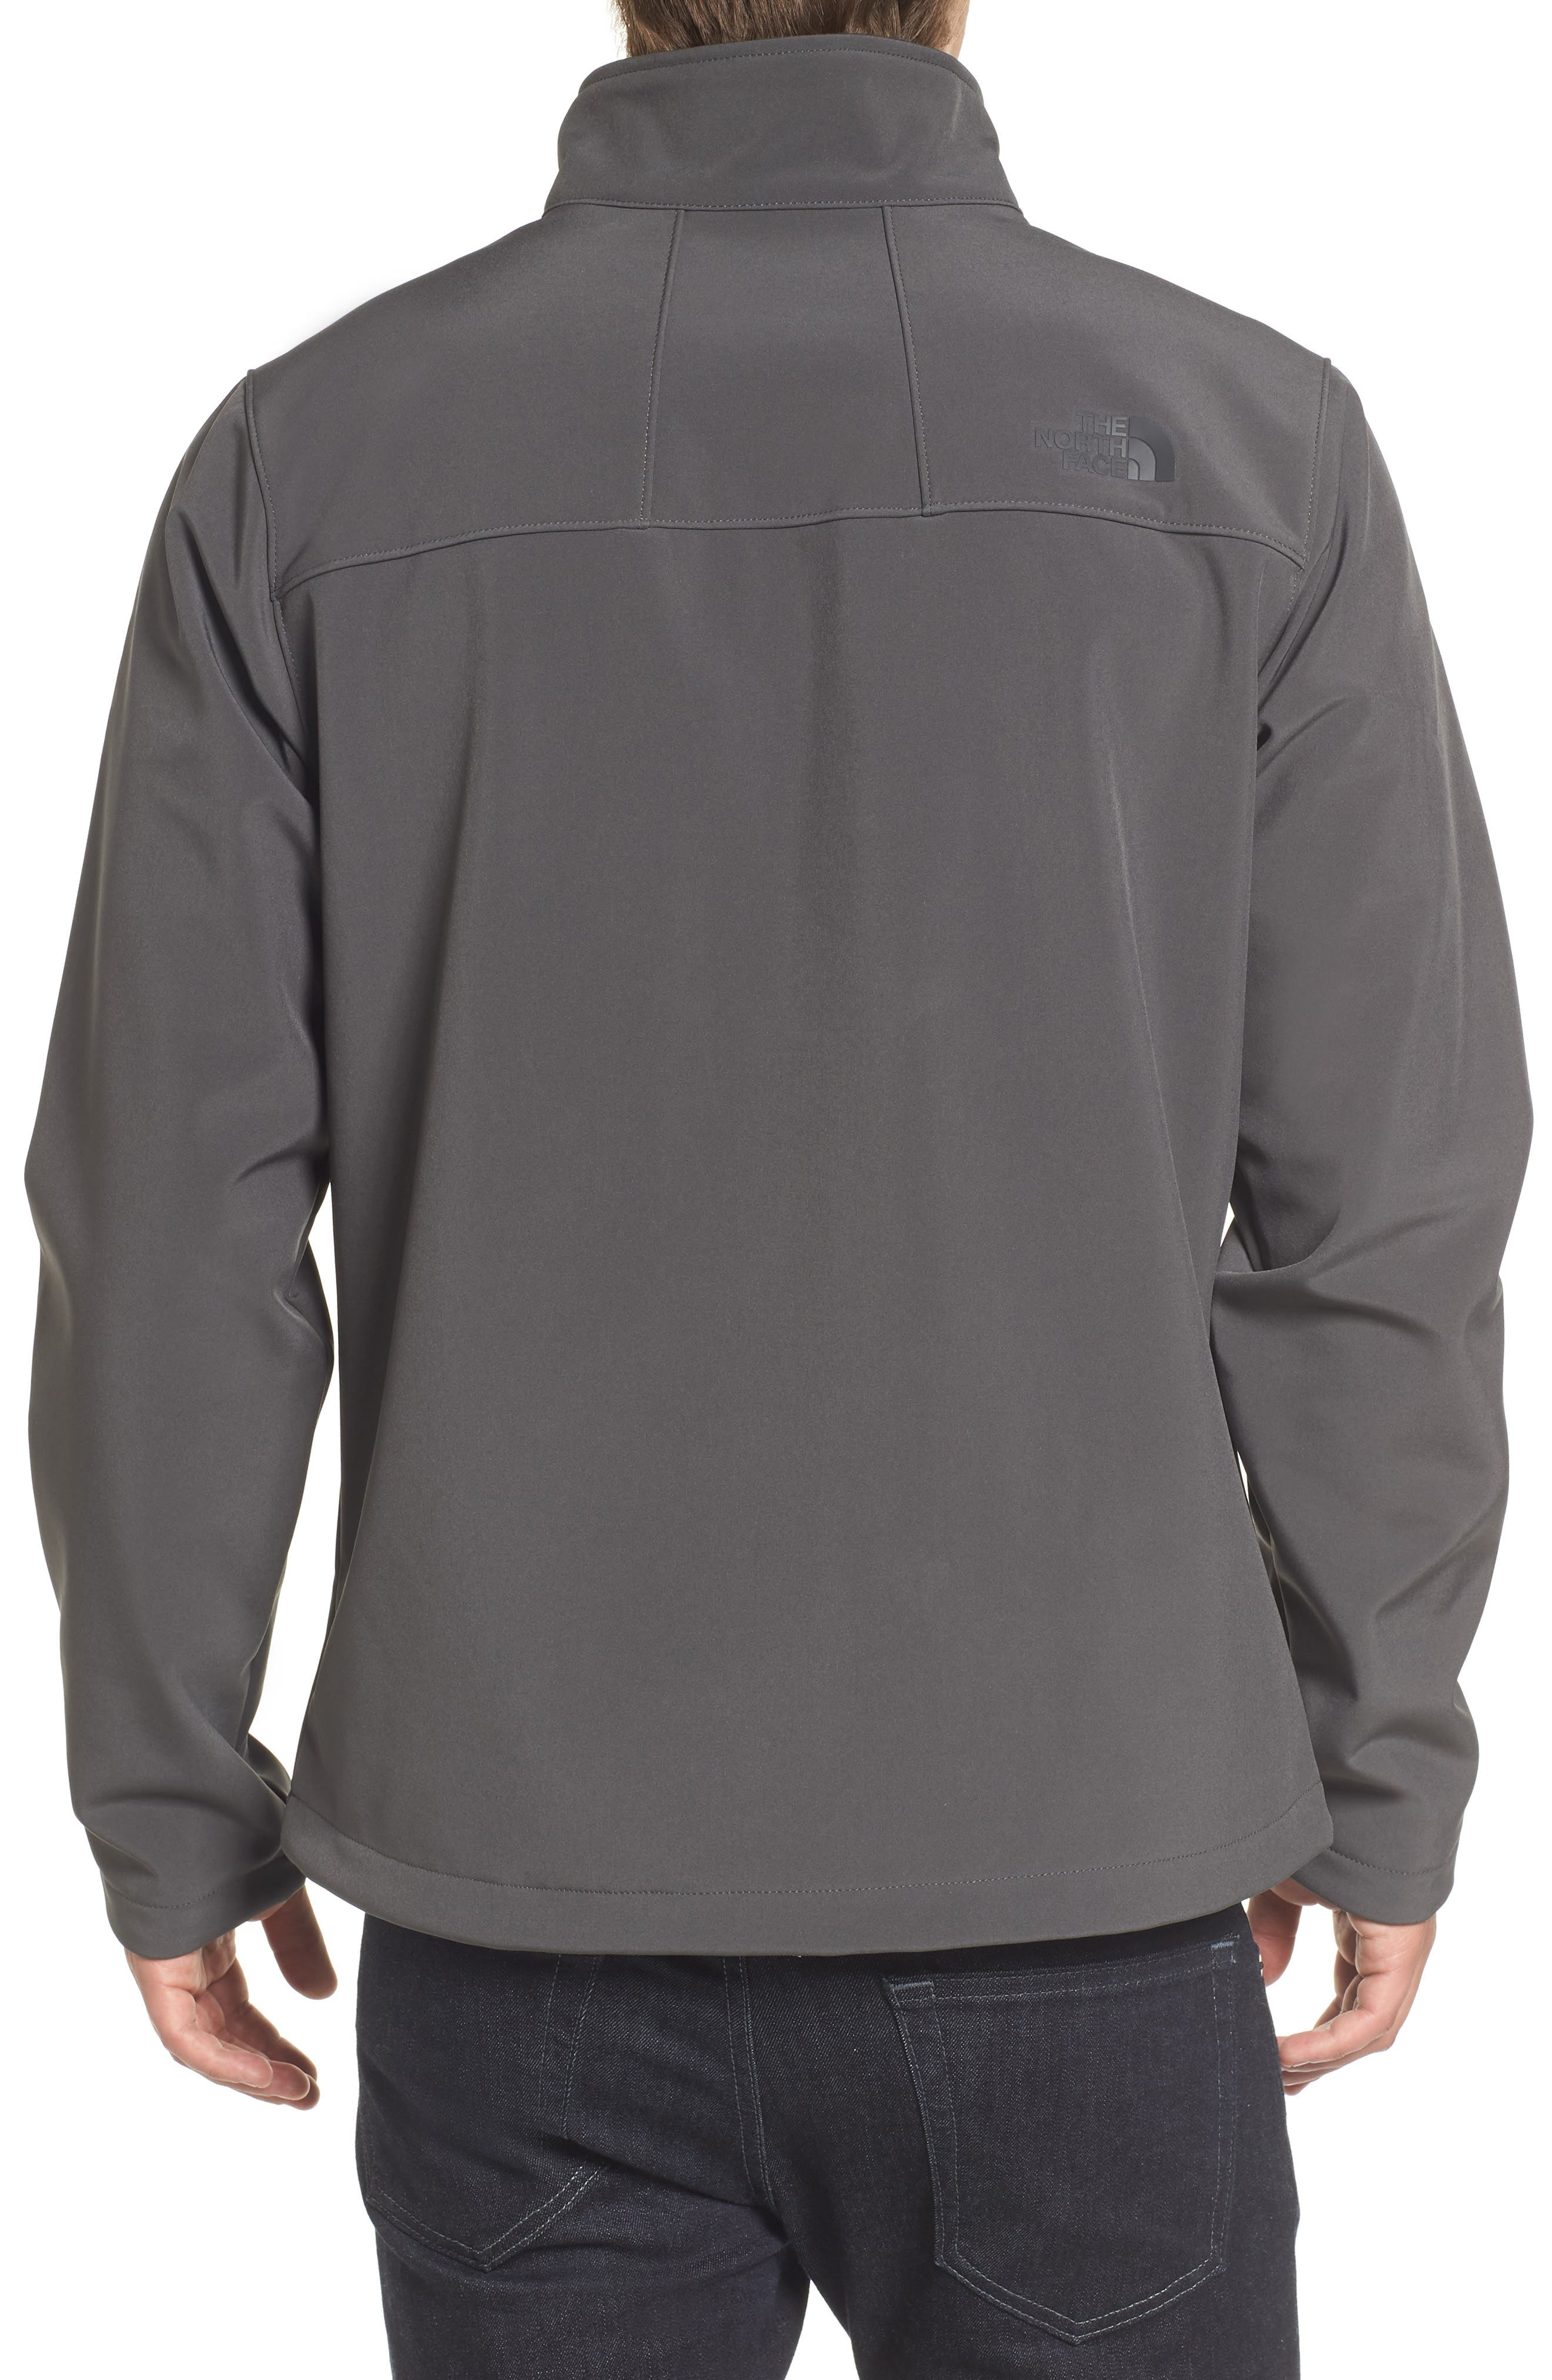 'Apex Bionic 2' Windproof & Water Resistant Soft Shell Jacket,                             Alternate thumbnail 26, color,